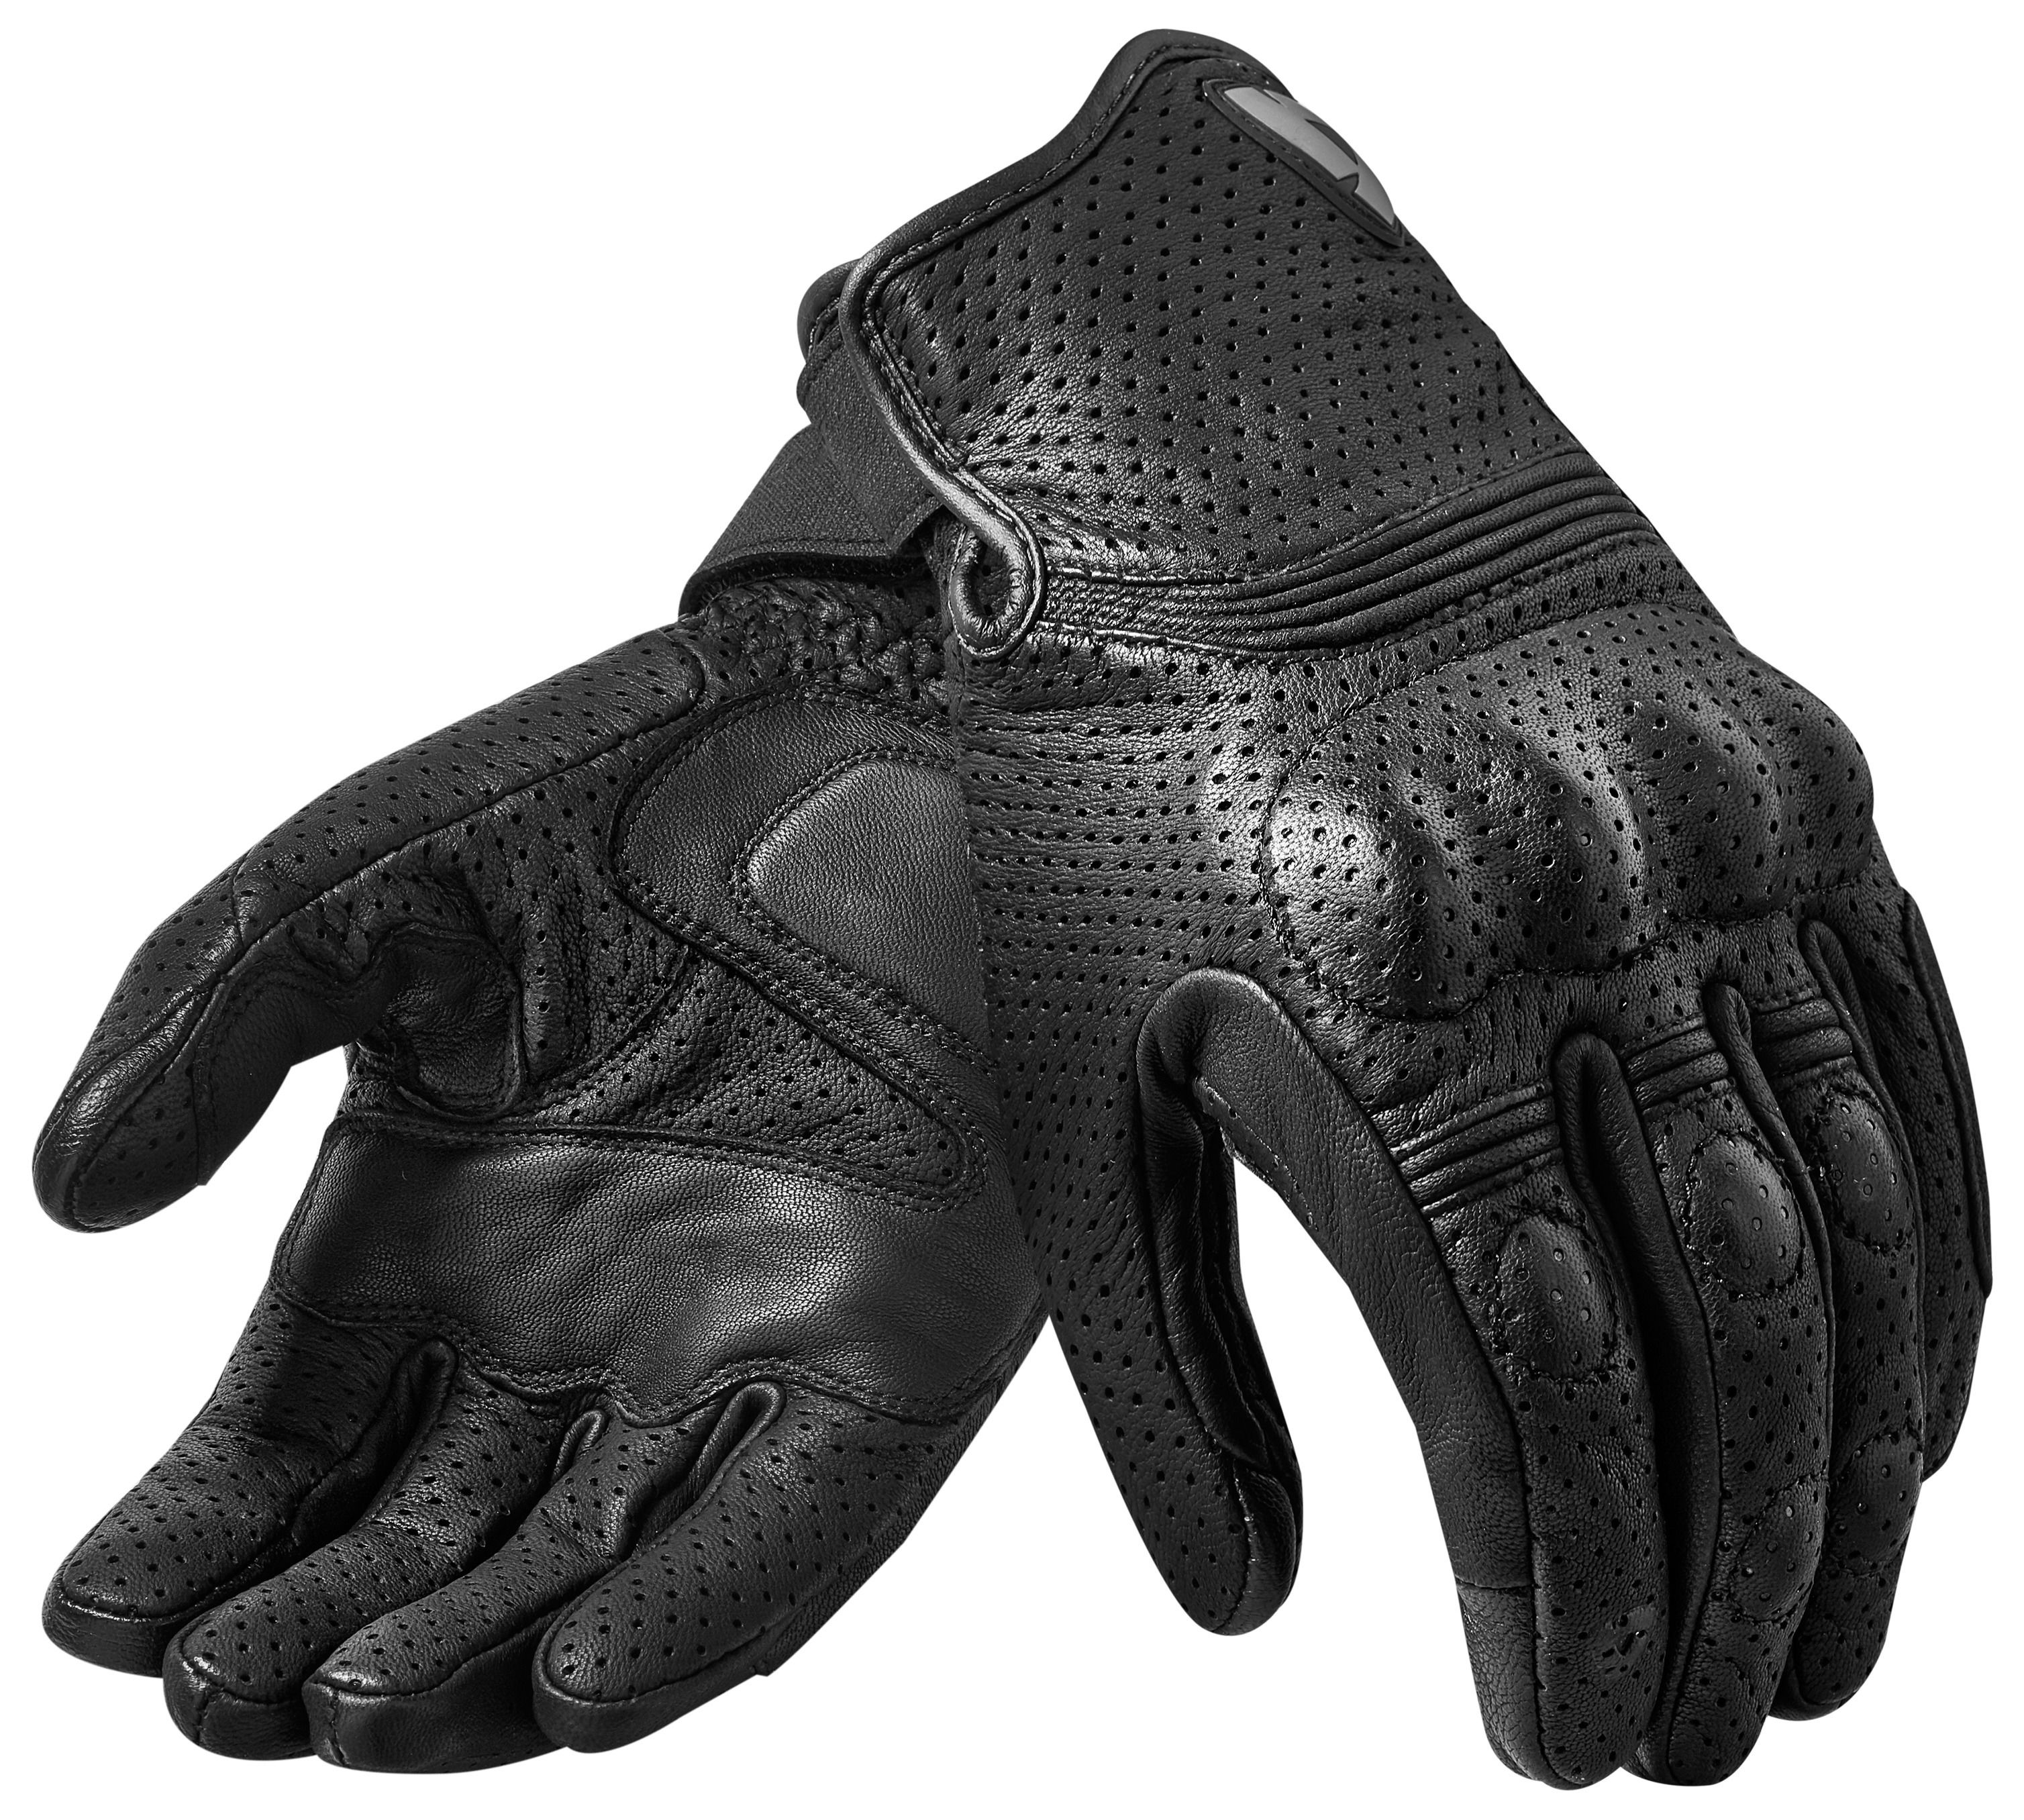 Motorcycle gloves singapore - Fly 2 Gloves Revzilla